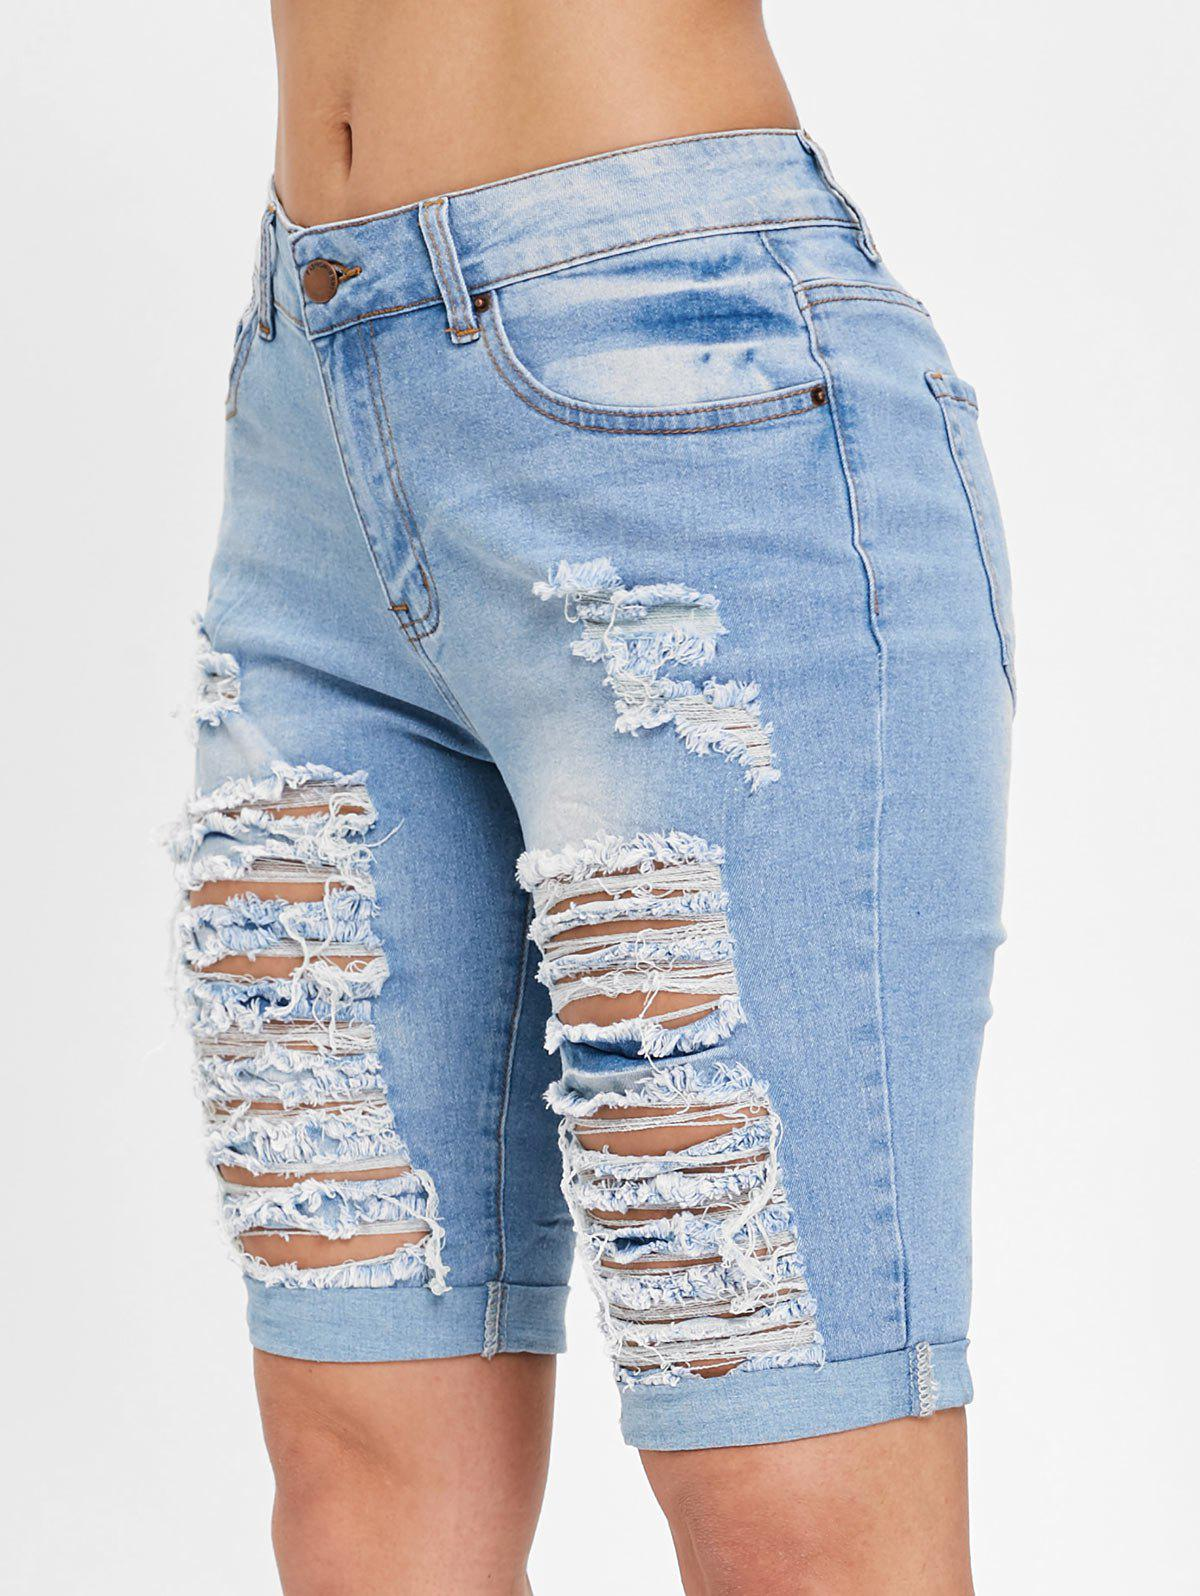 Best Ripped Knee Length Jean Shorts